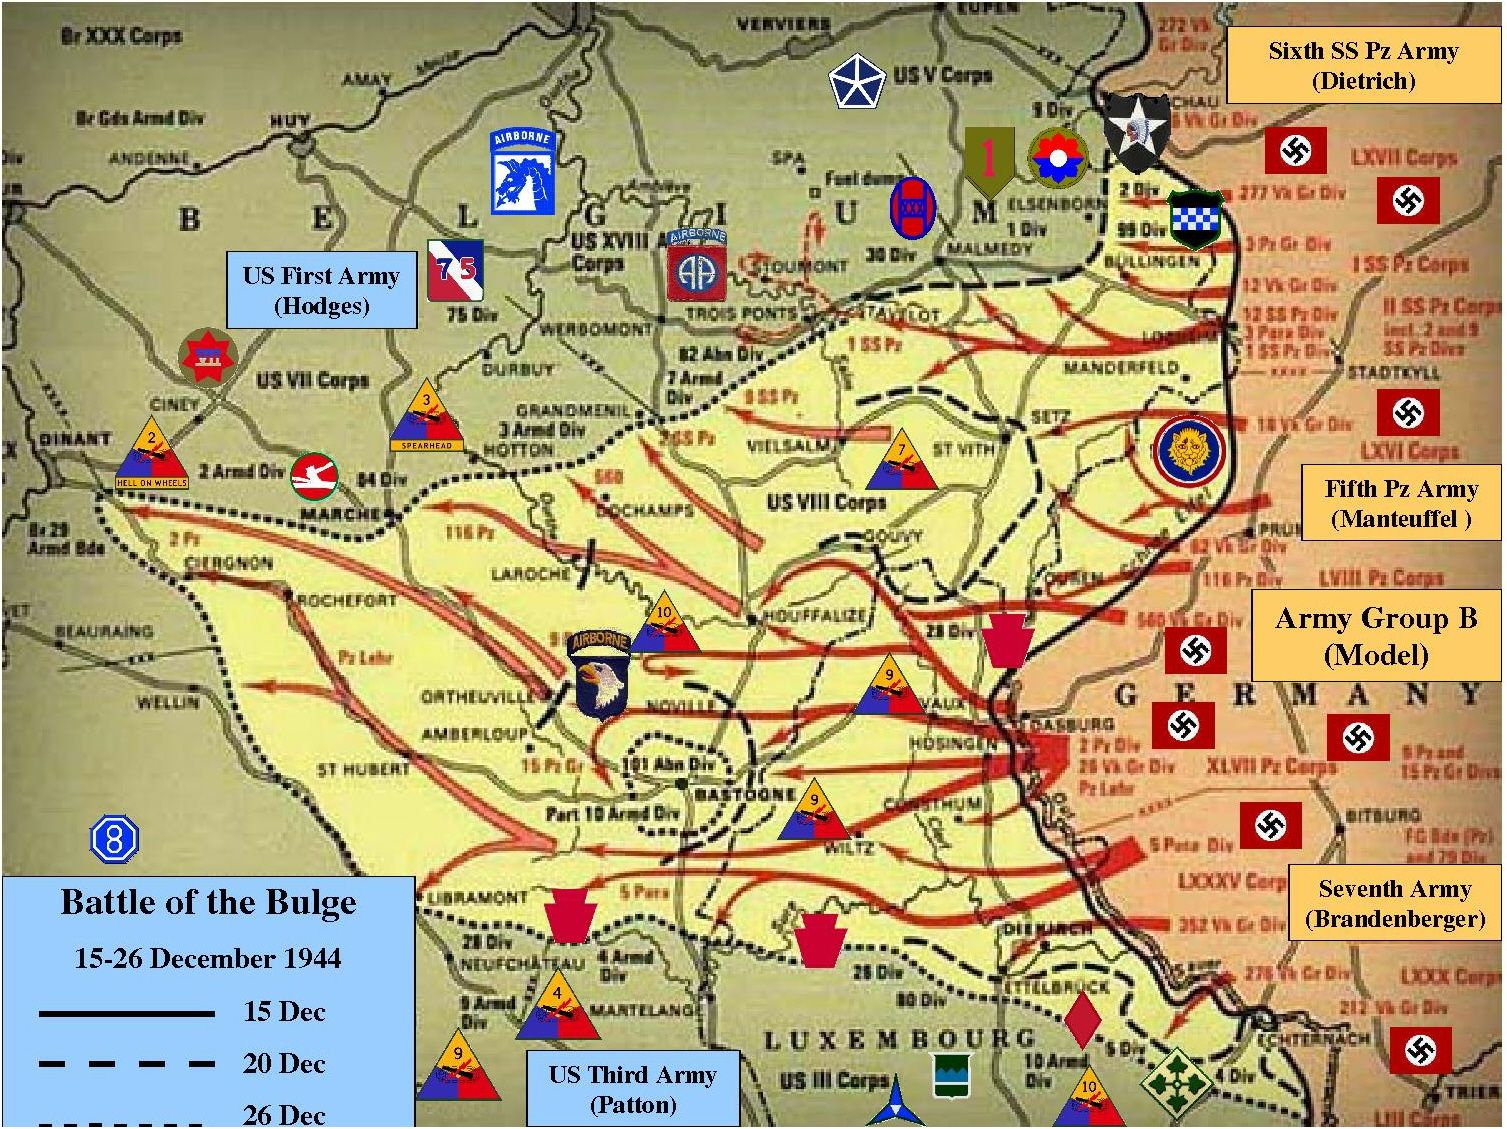 map of army units if you like the image or like this post please contribute with us to share this post to your social media or save this post in your